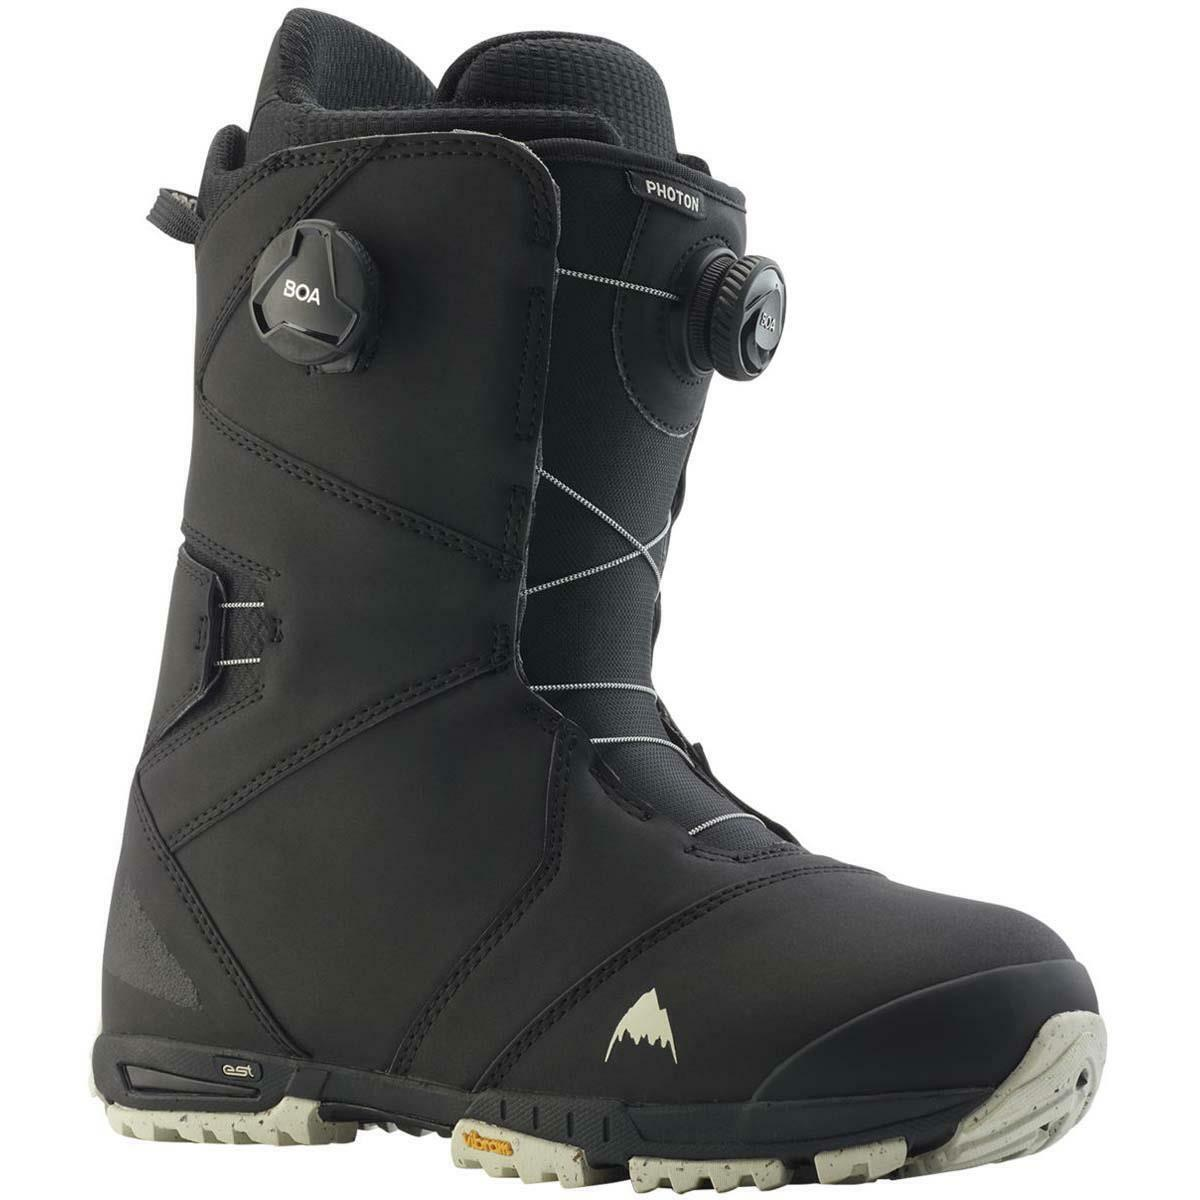 NEW  Burton Photon Boa W20 Winter Snowboard Men's Boot Black